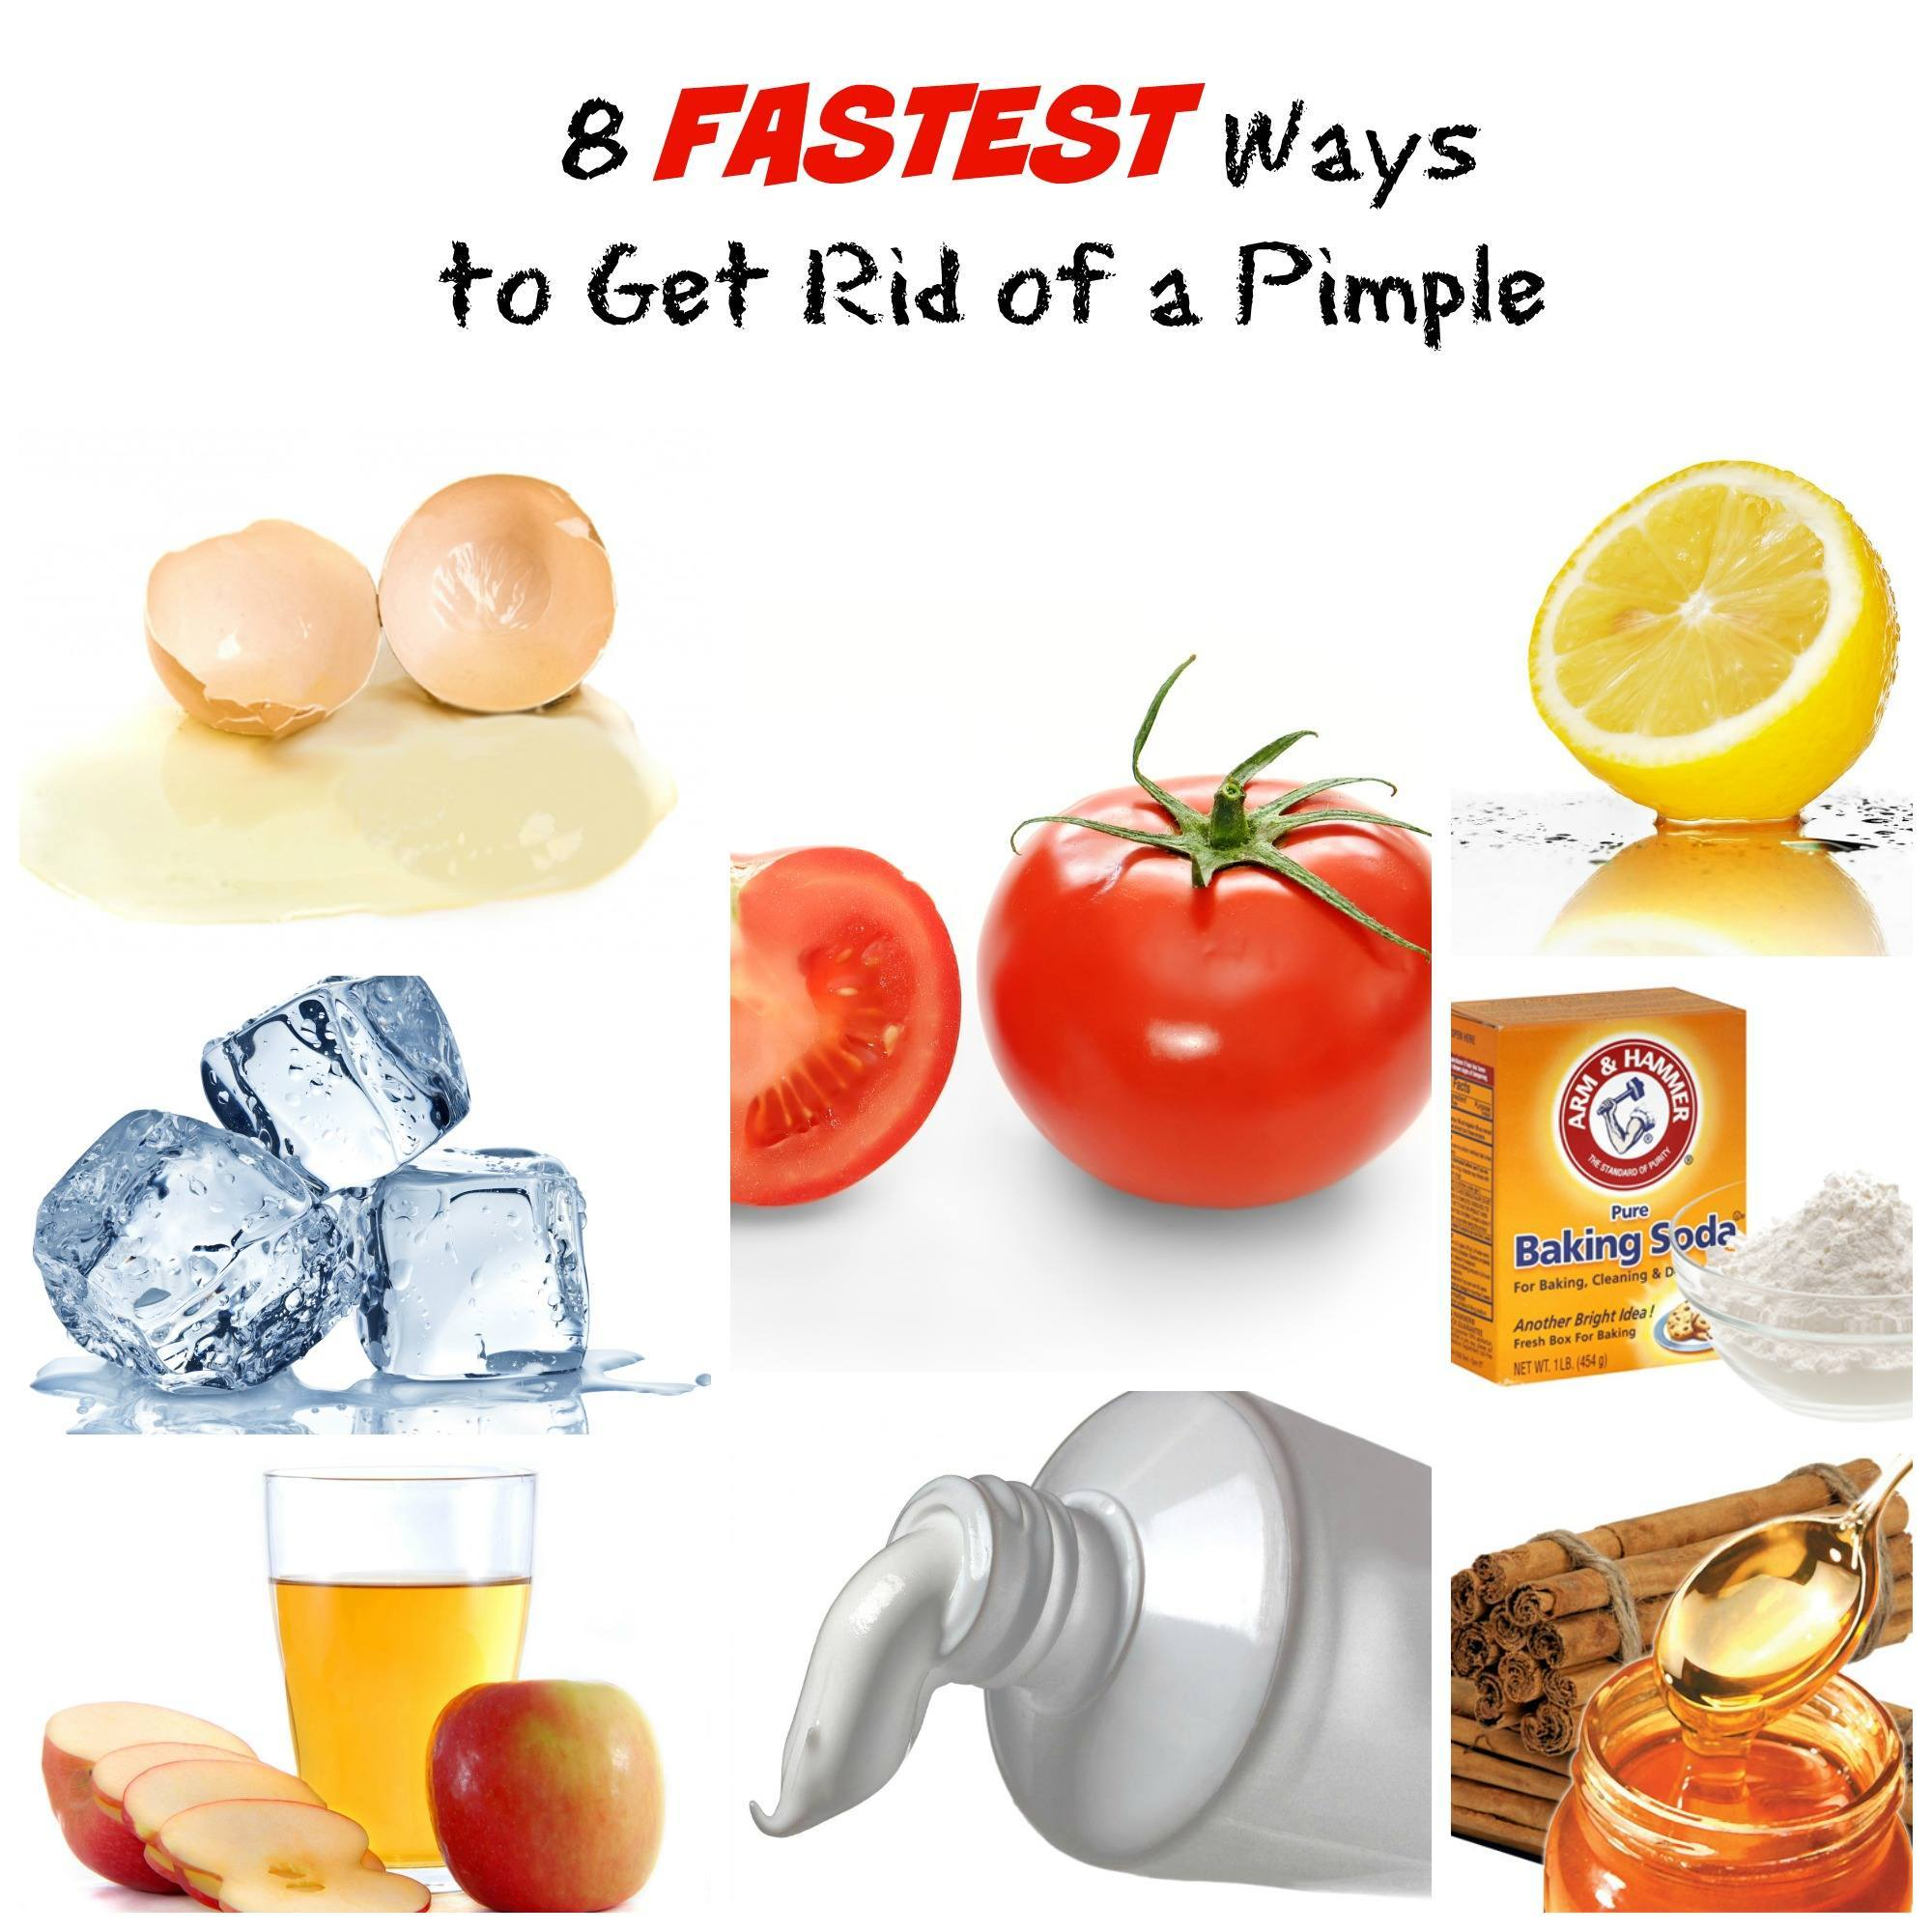 8 Fastest Ways To Get Rid Of A Pimple